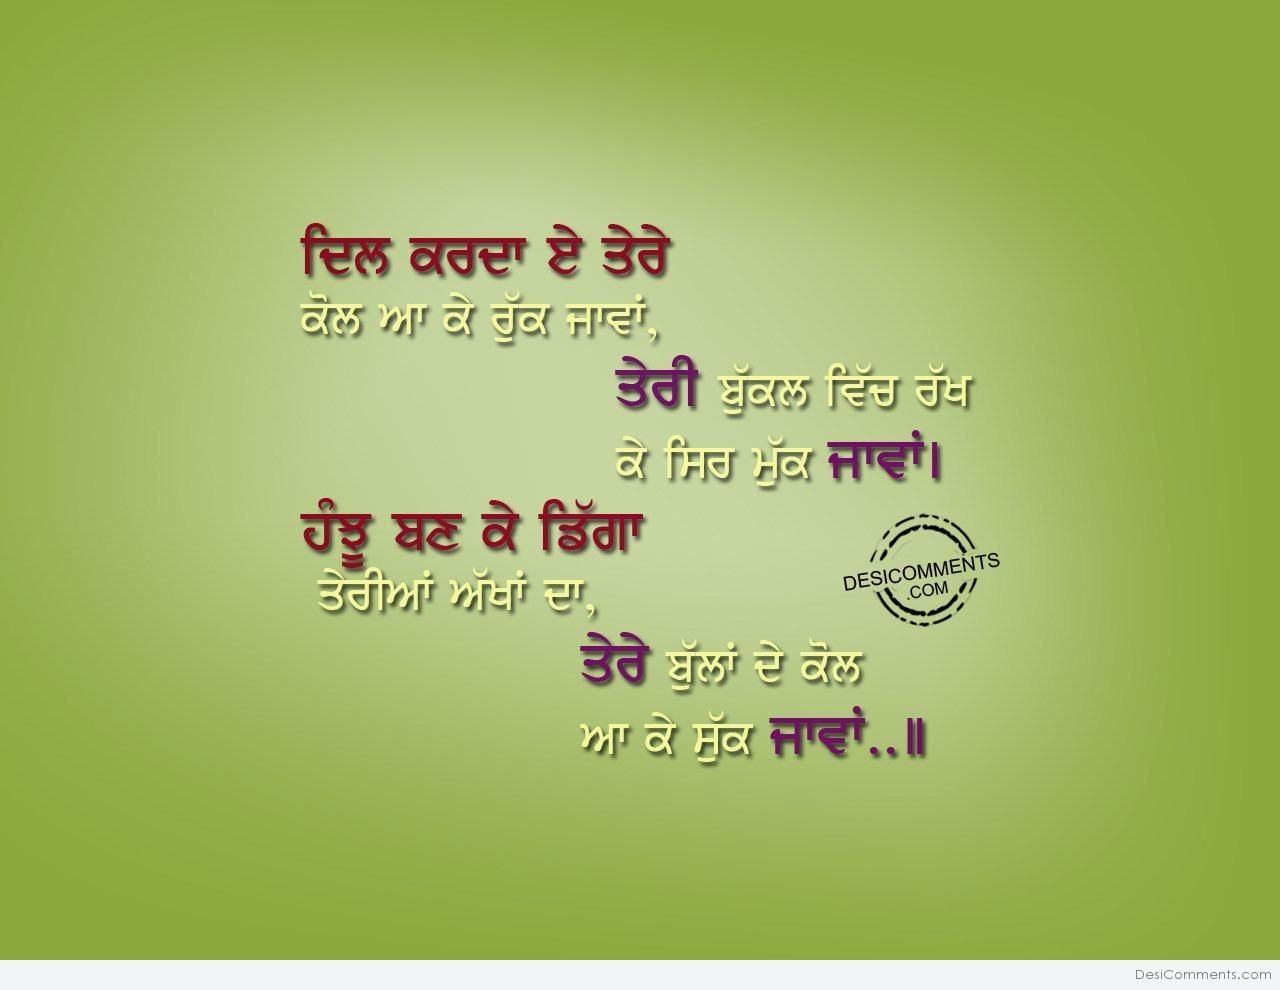 Desi comment Love Wallpaper : Punjabi Love Pictures, Images, Graphics for Facebook, Whatsapp, Pinterest - Page 9